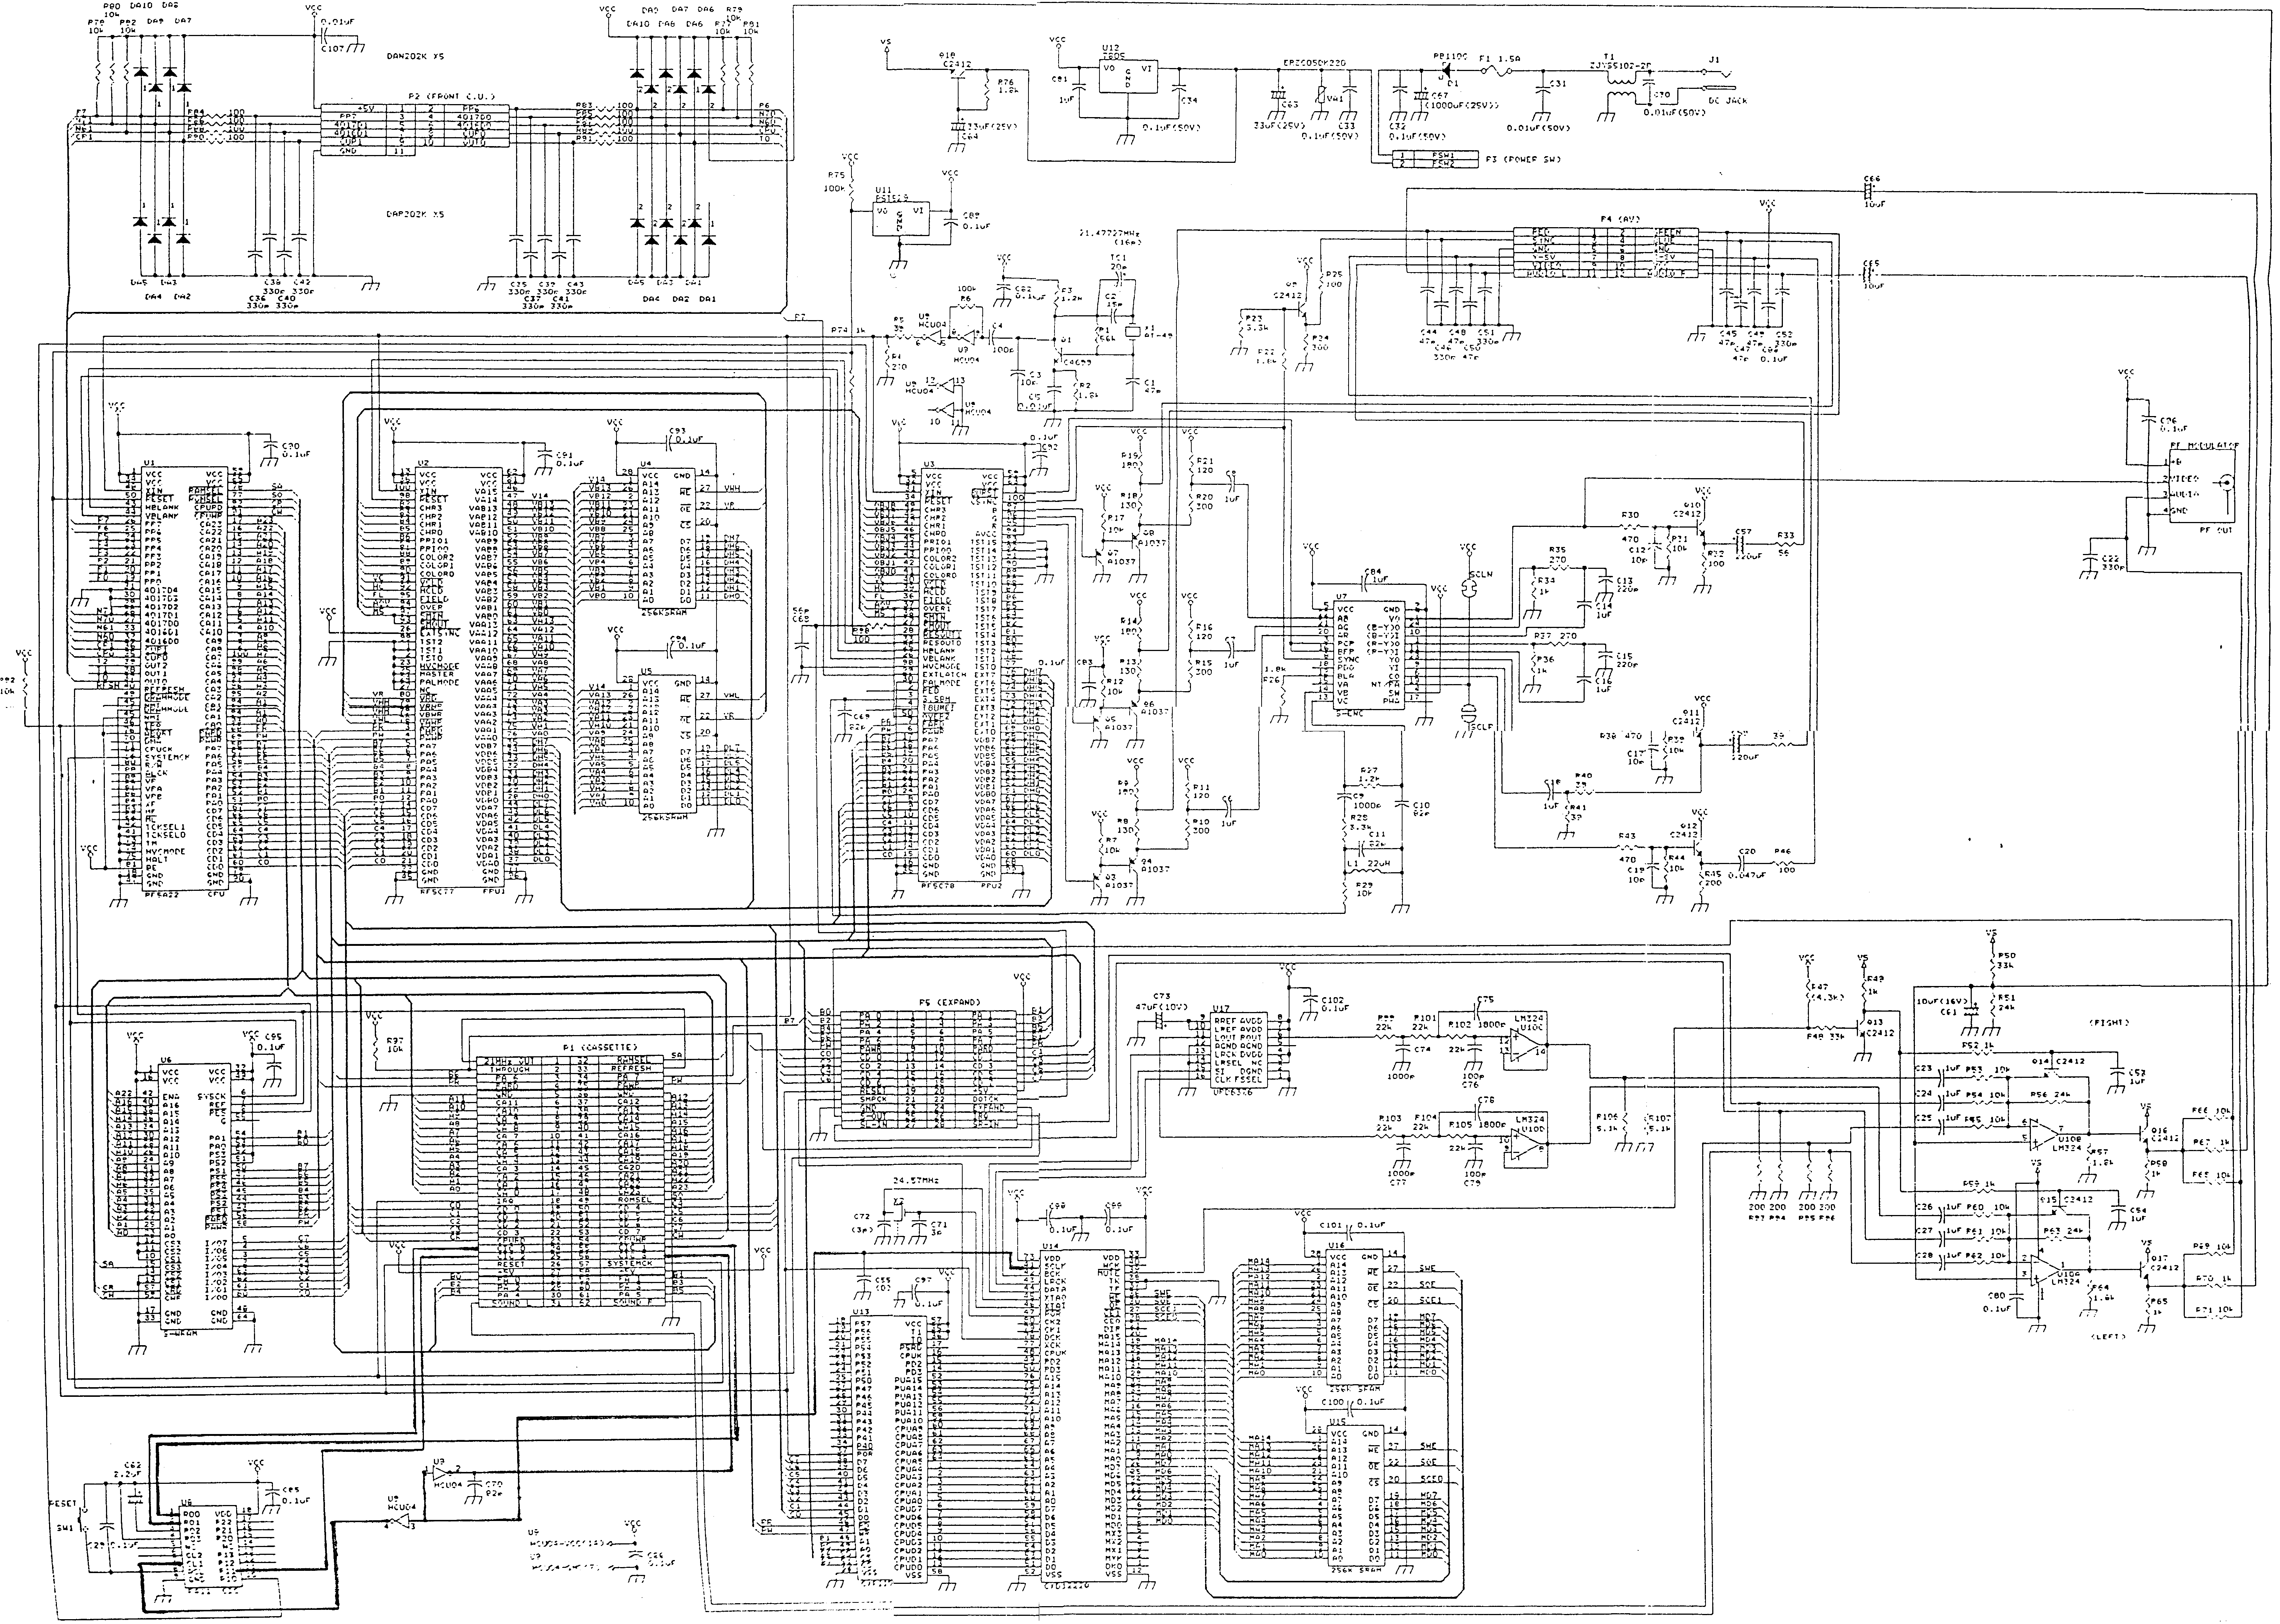 i need some help with snes schematics